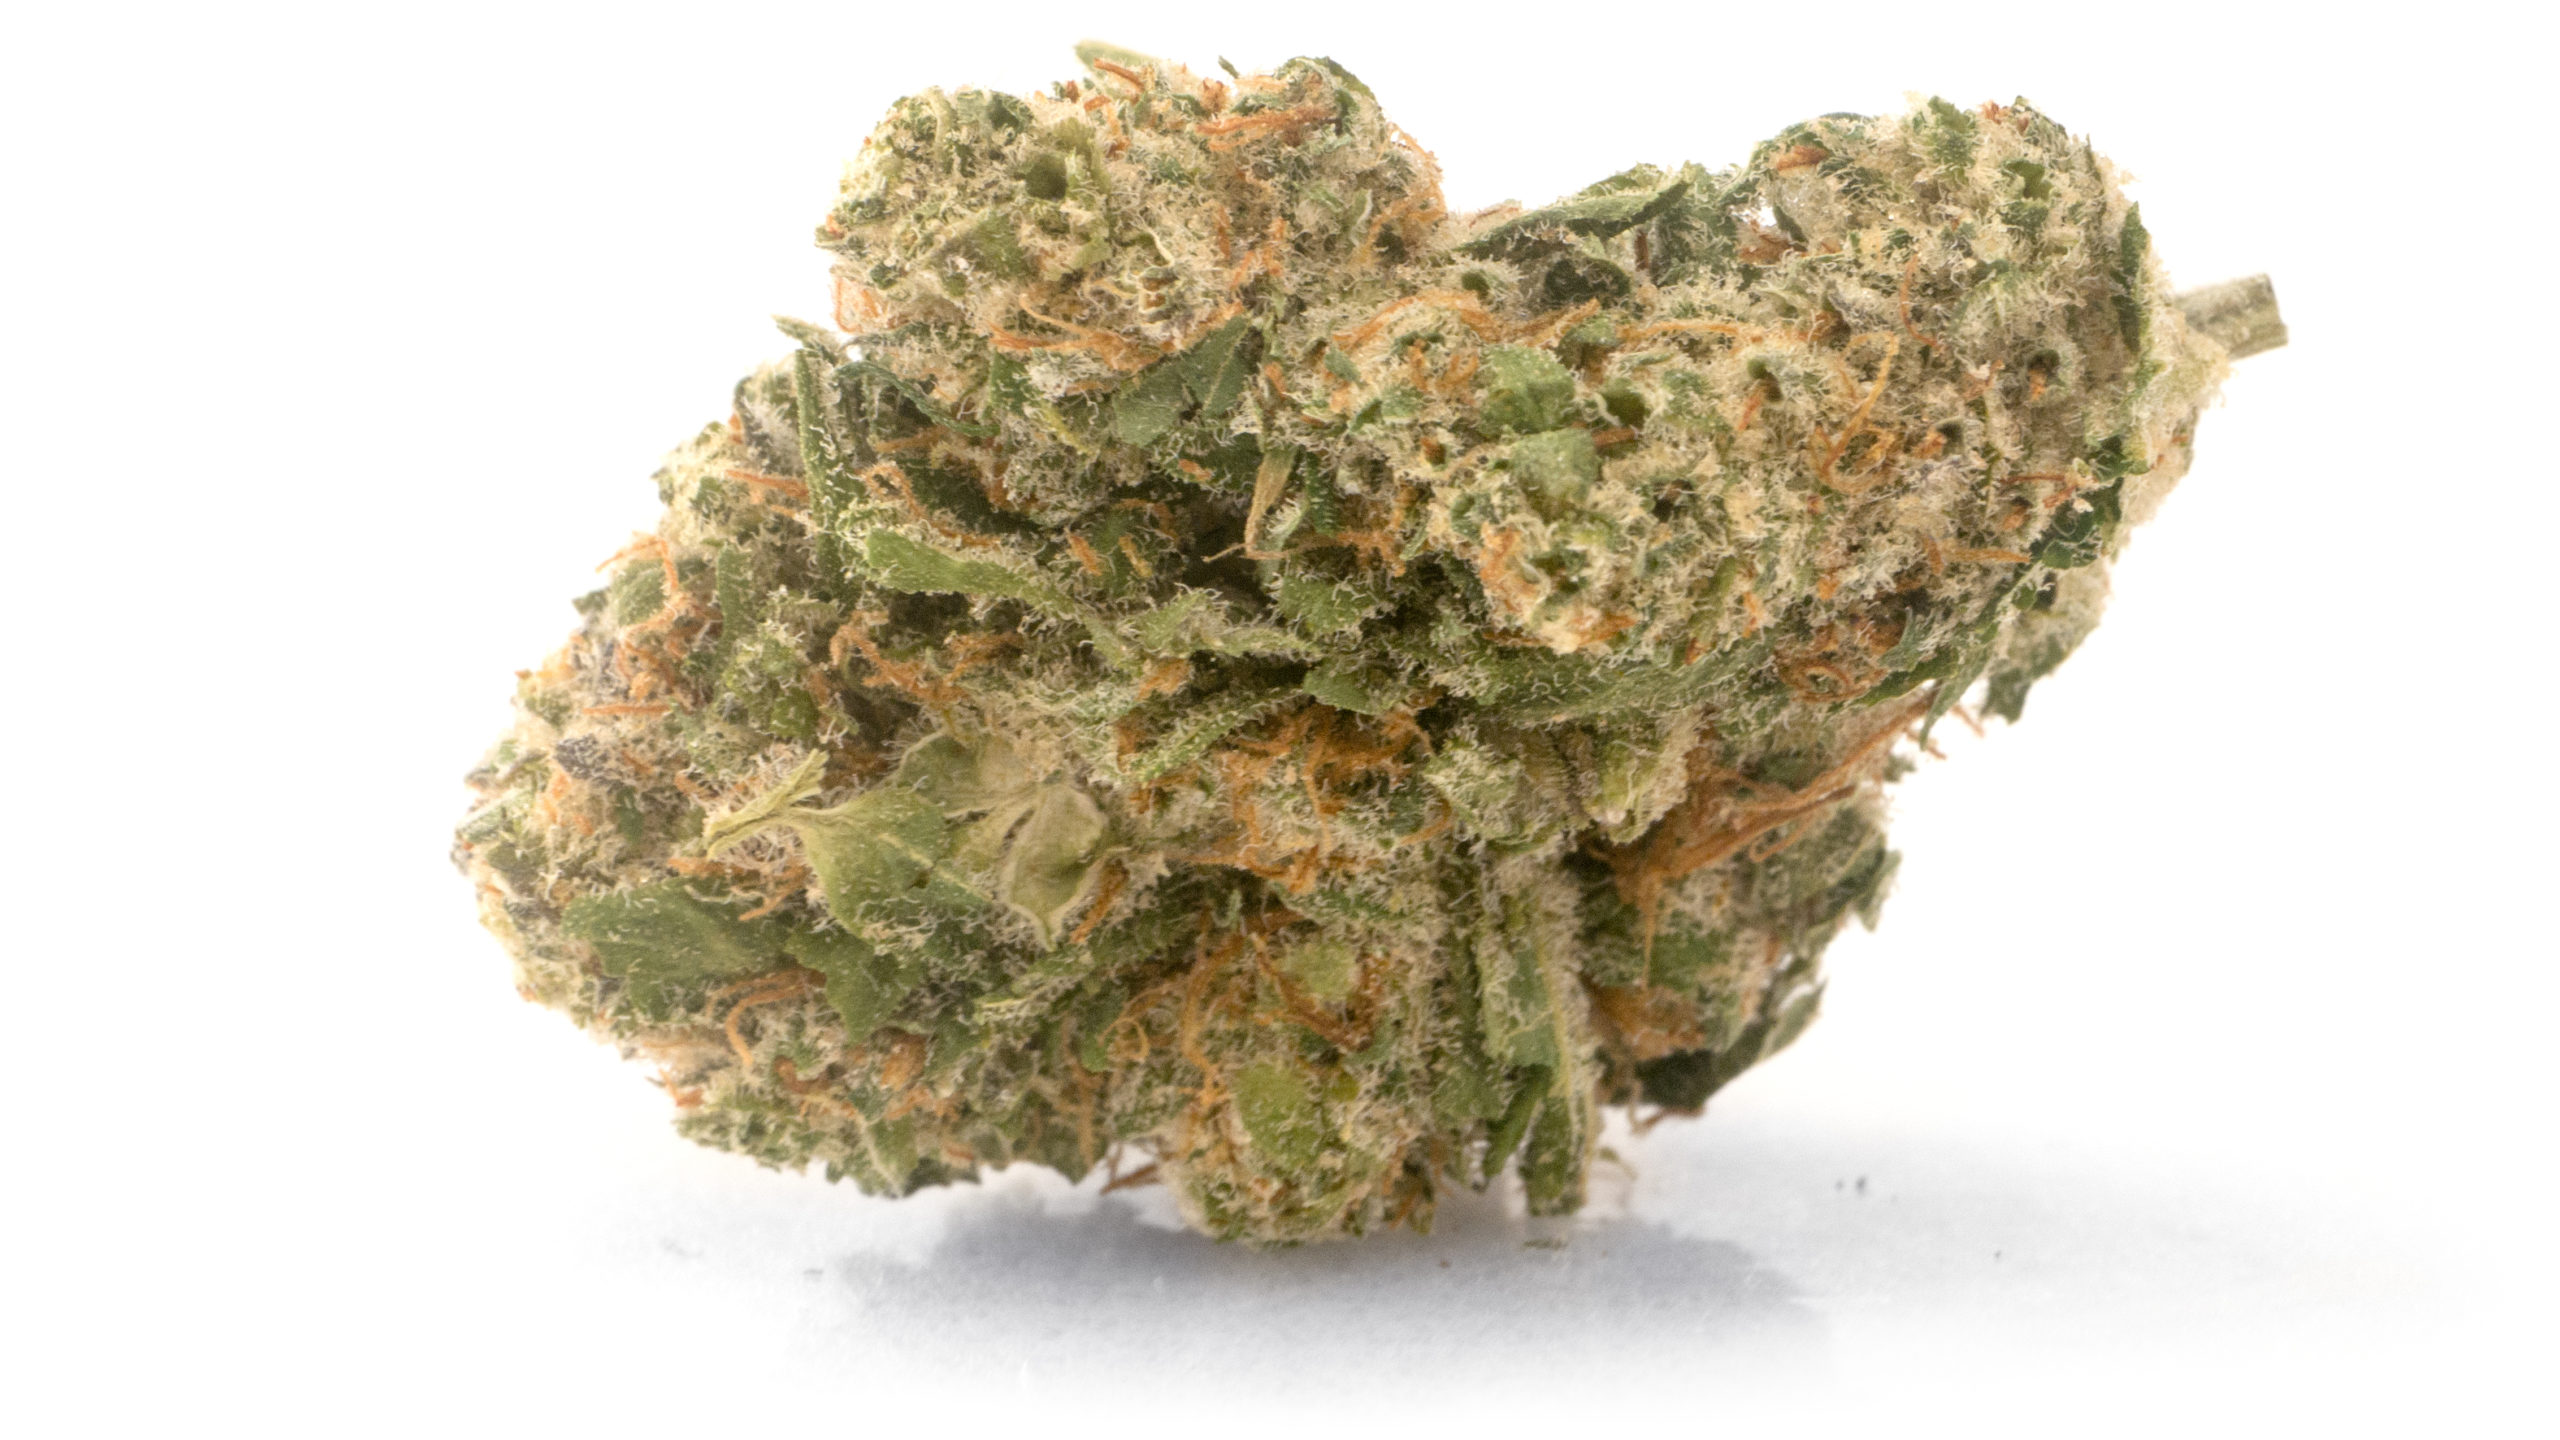 AltaVie North Star CBD bud AltaVie North Star CBD bud macro